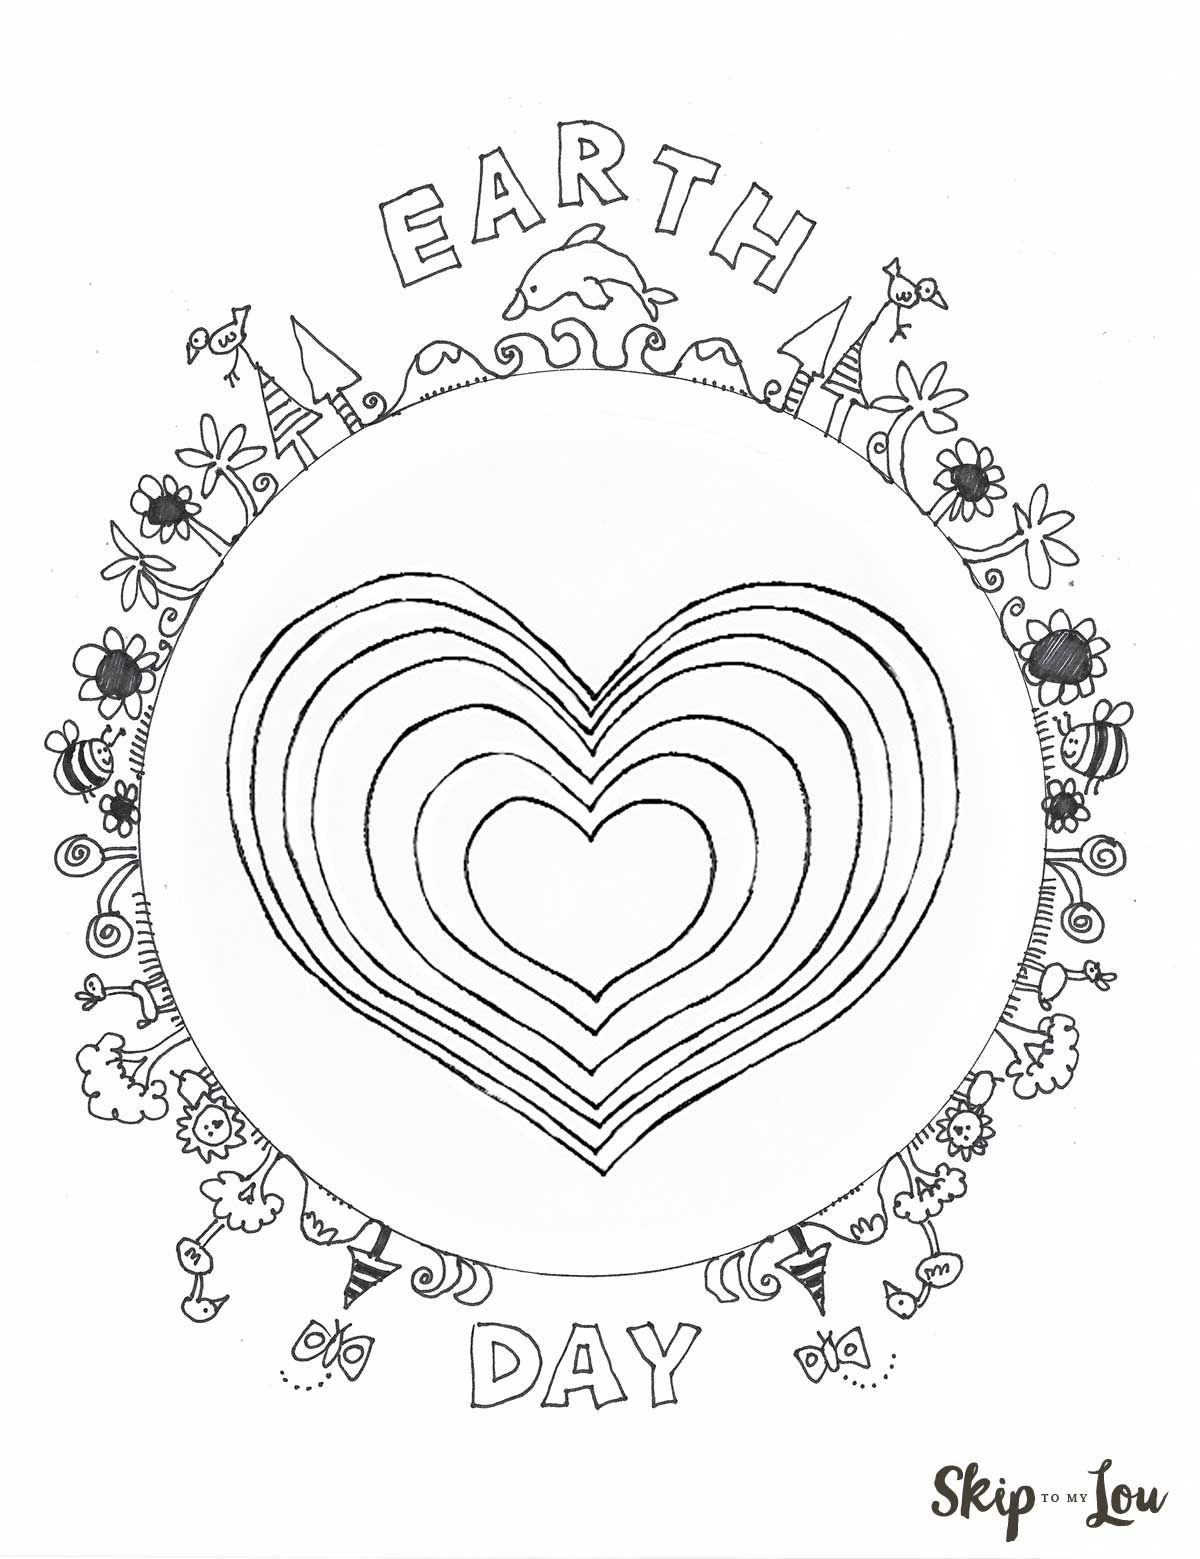 Earth Day Coloring Page With Heart Earth Day Coloring Pages